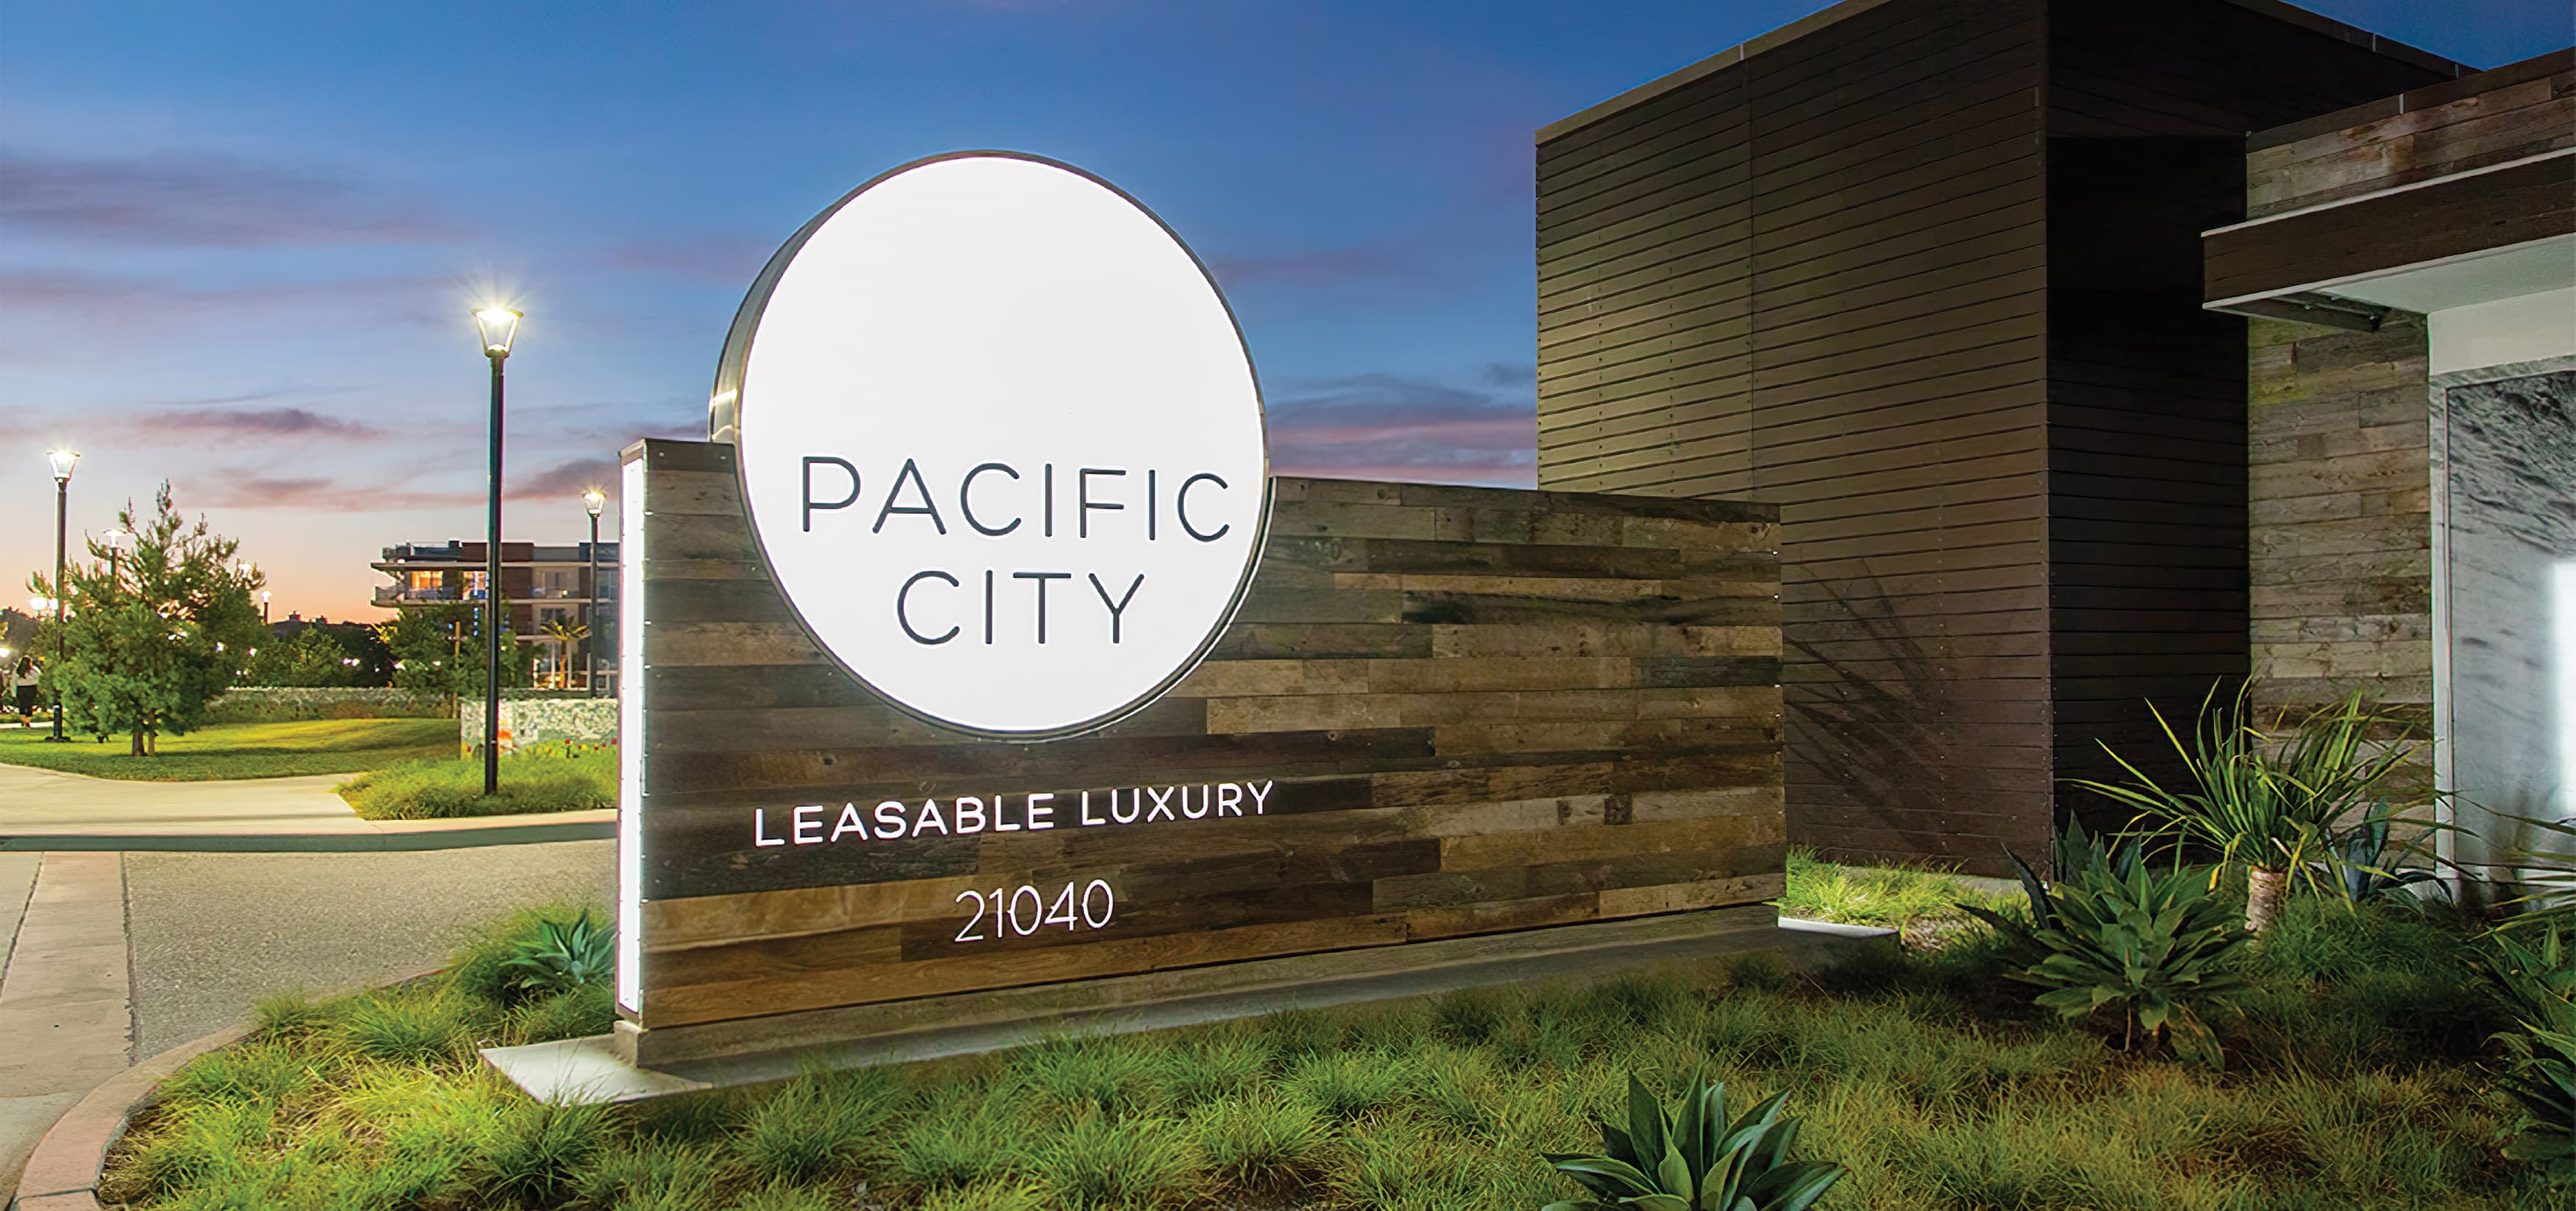 Pacific City, a luxury residential community in Huntington Beach, California. Project Identity Monument